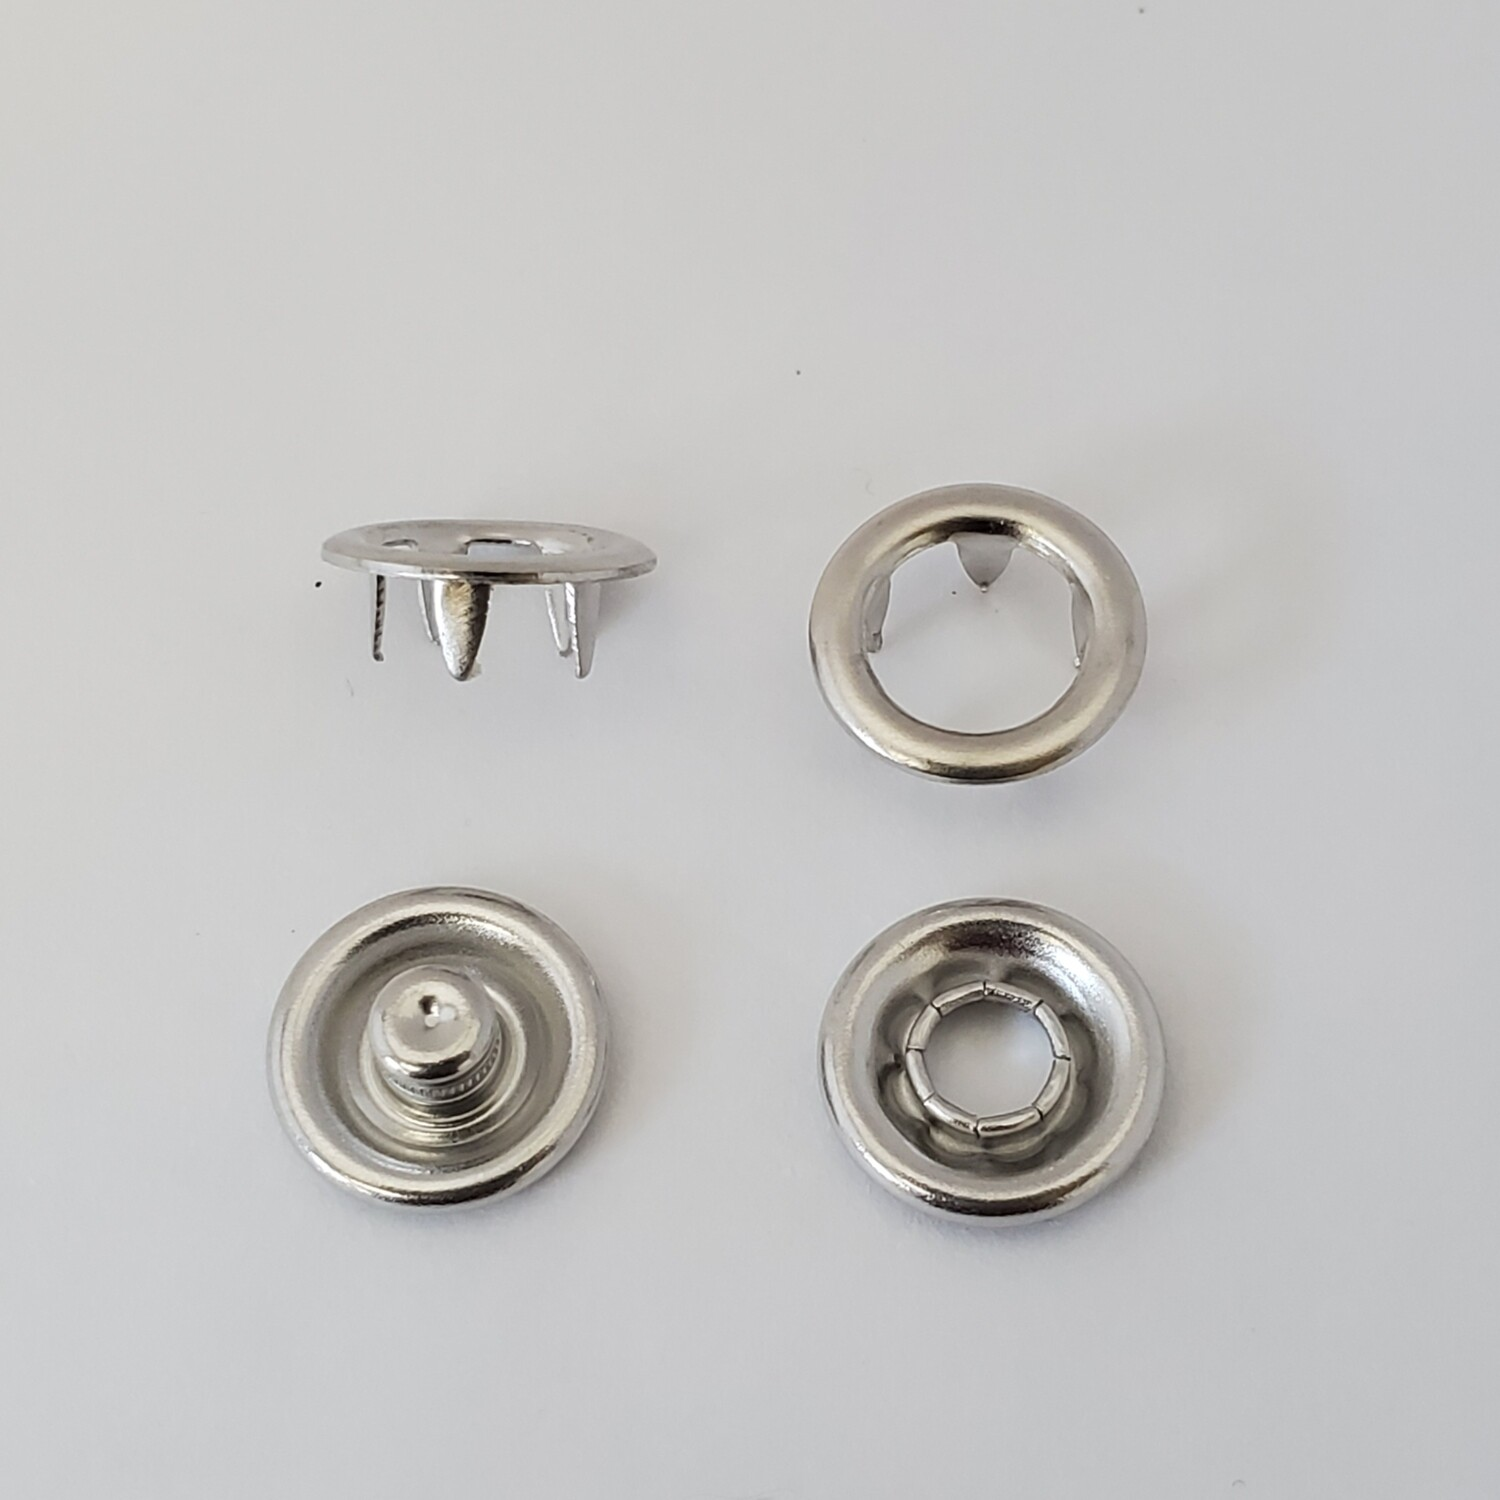 Open Ring Metal Prong Snaps - 11mm / Size 16